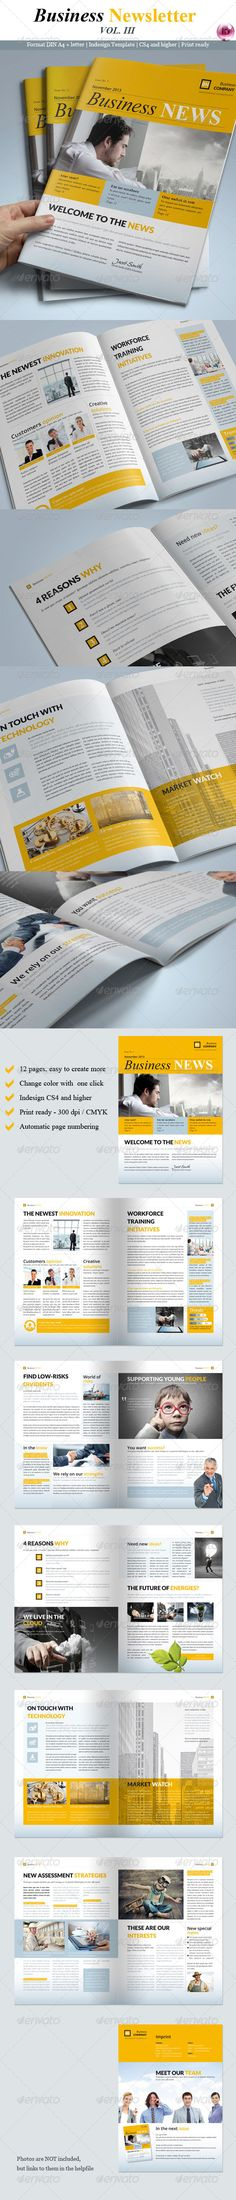 Business Newsletter Vol. III - Newsletters Print Templates